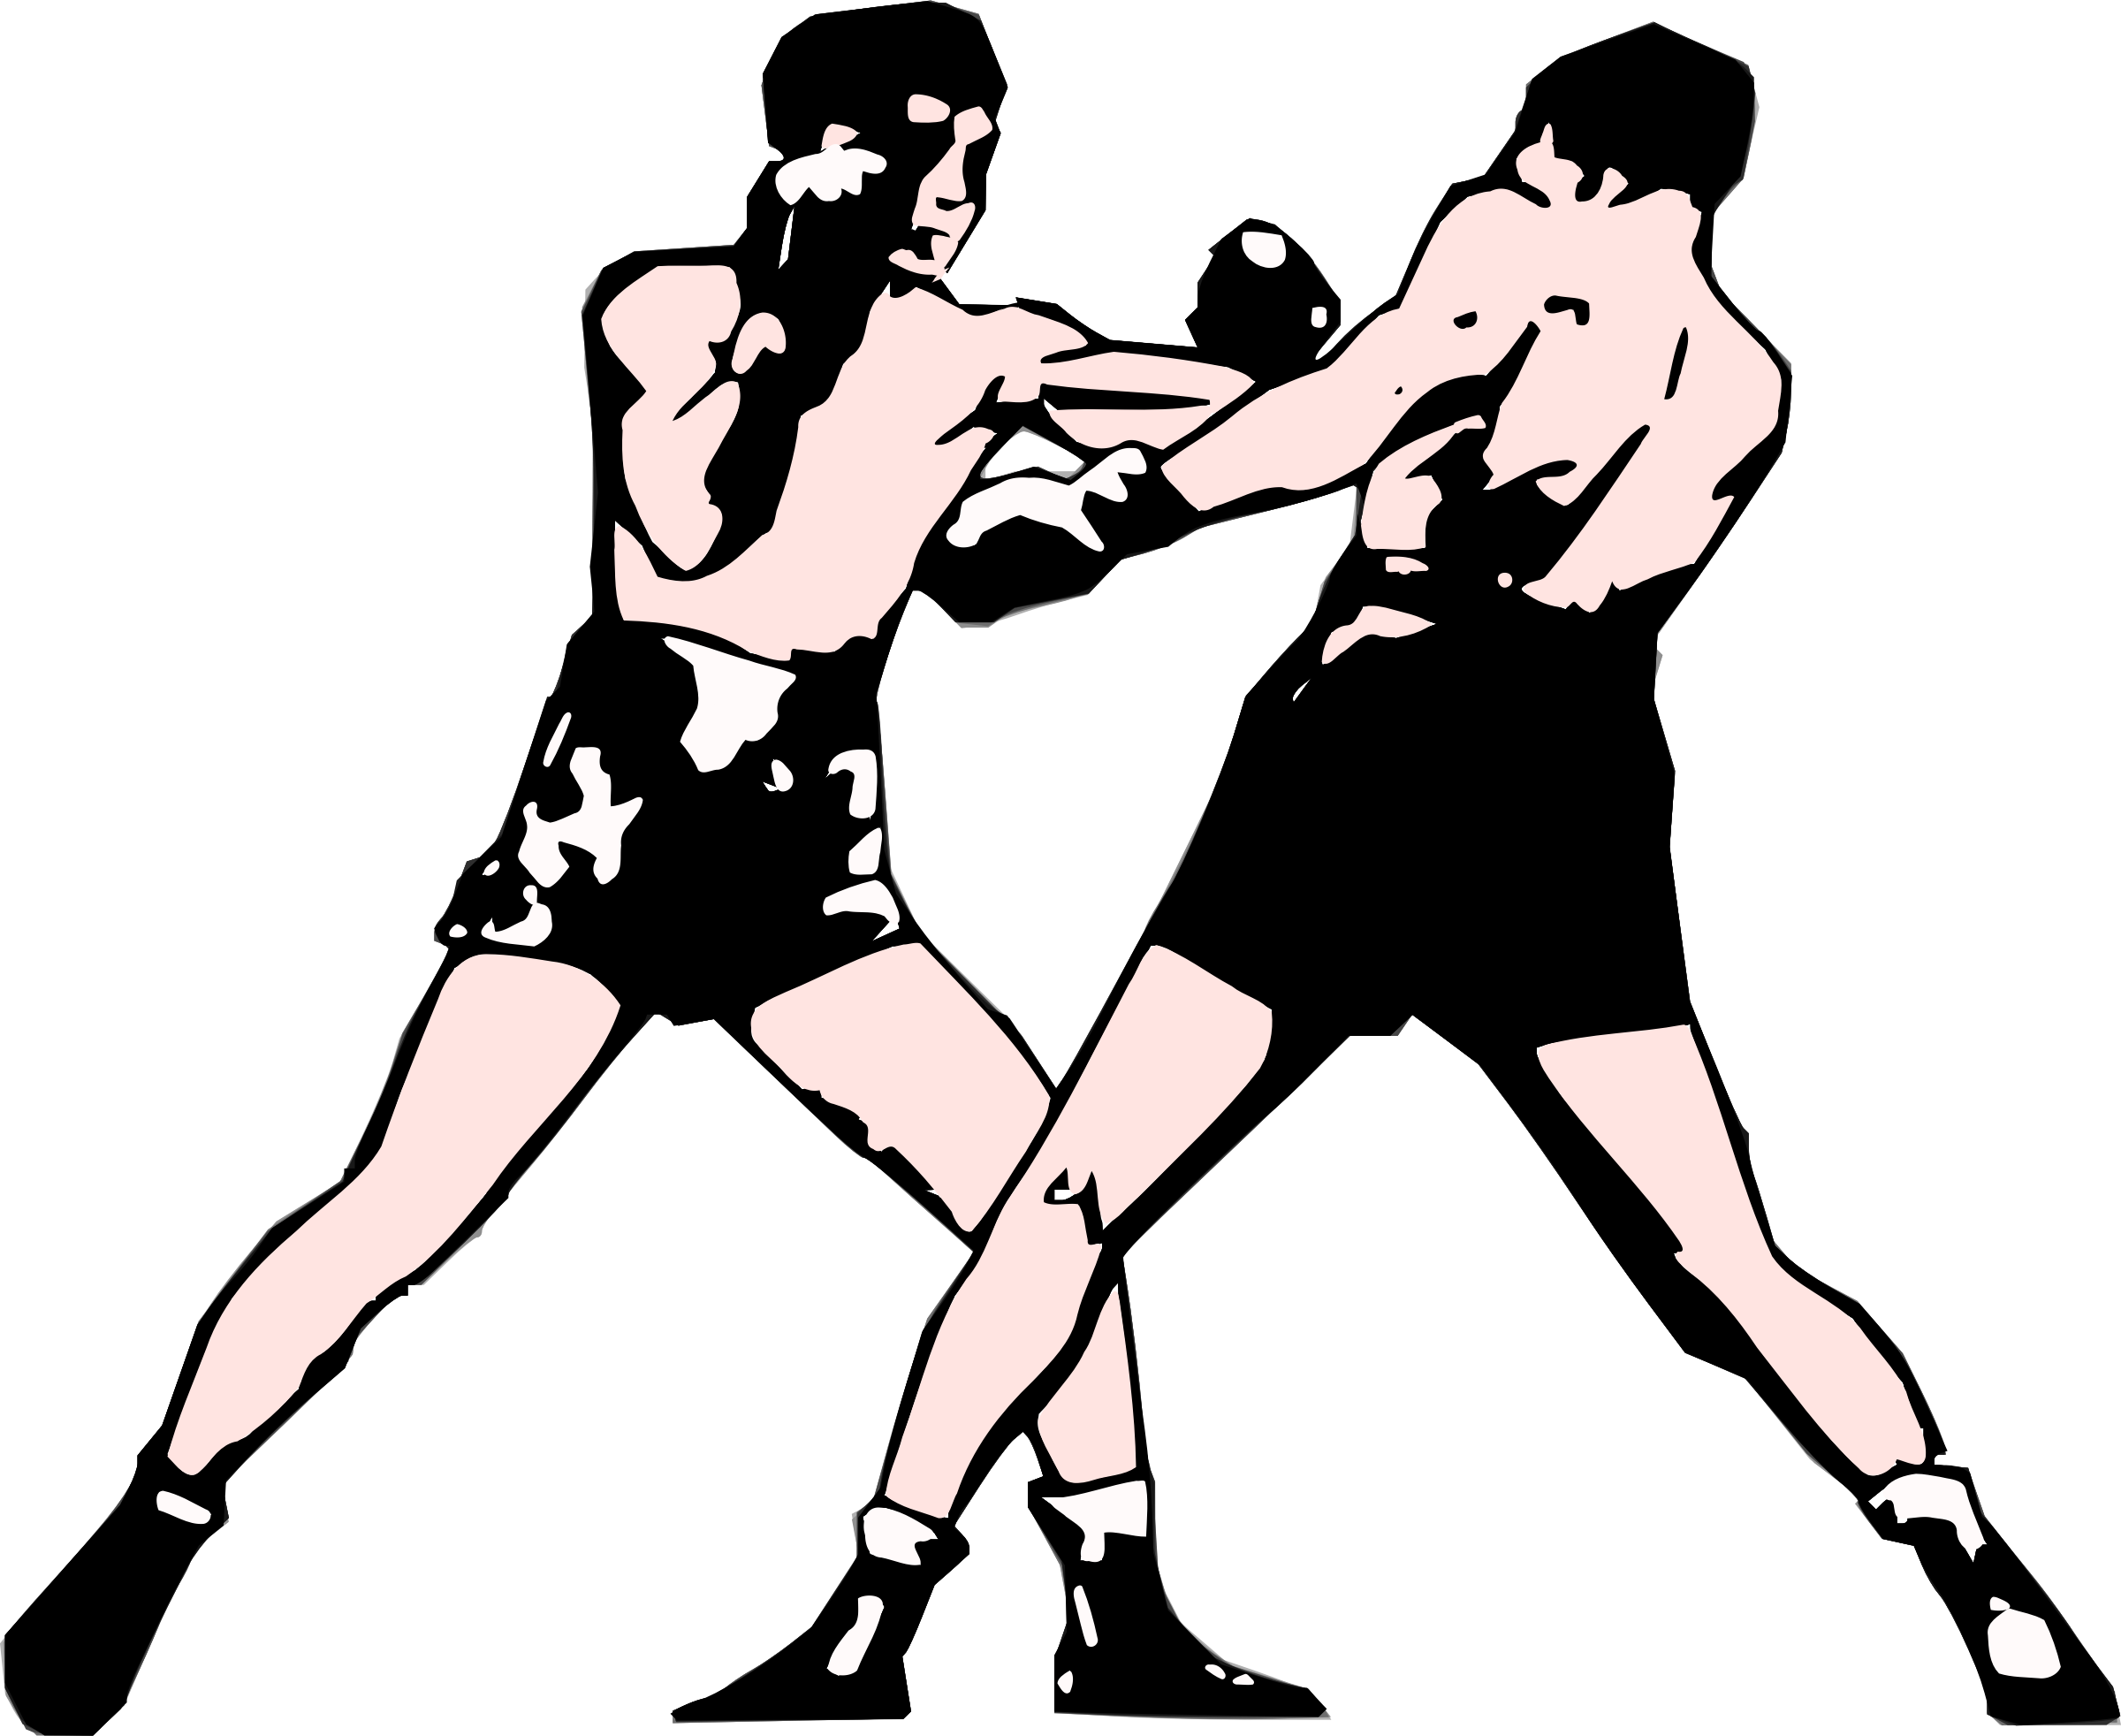 Boxing clipart fighter. Boxers big image png